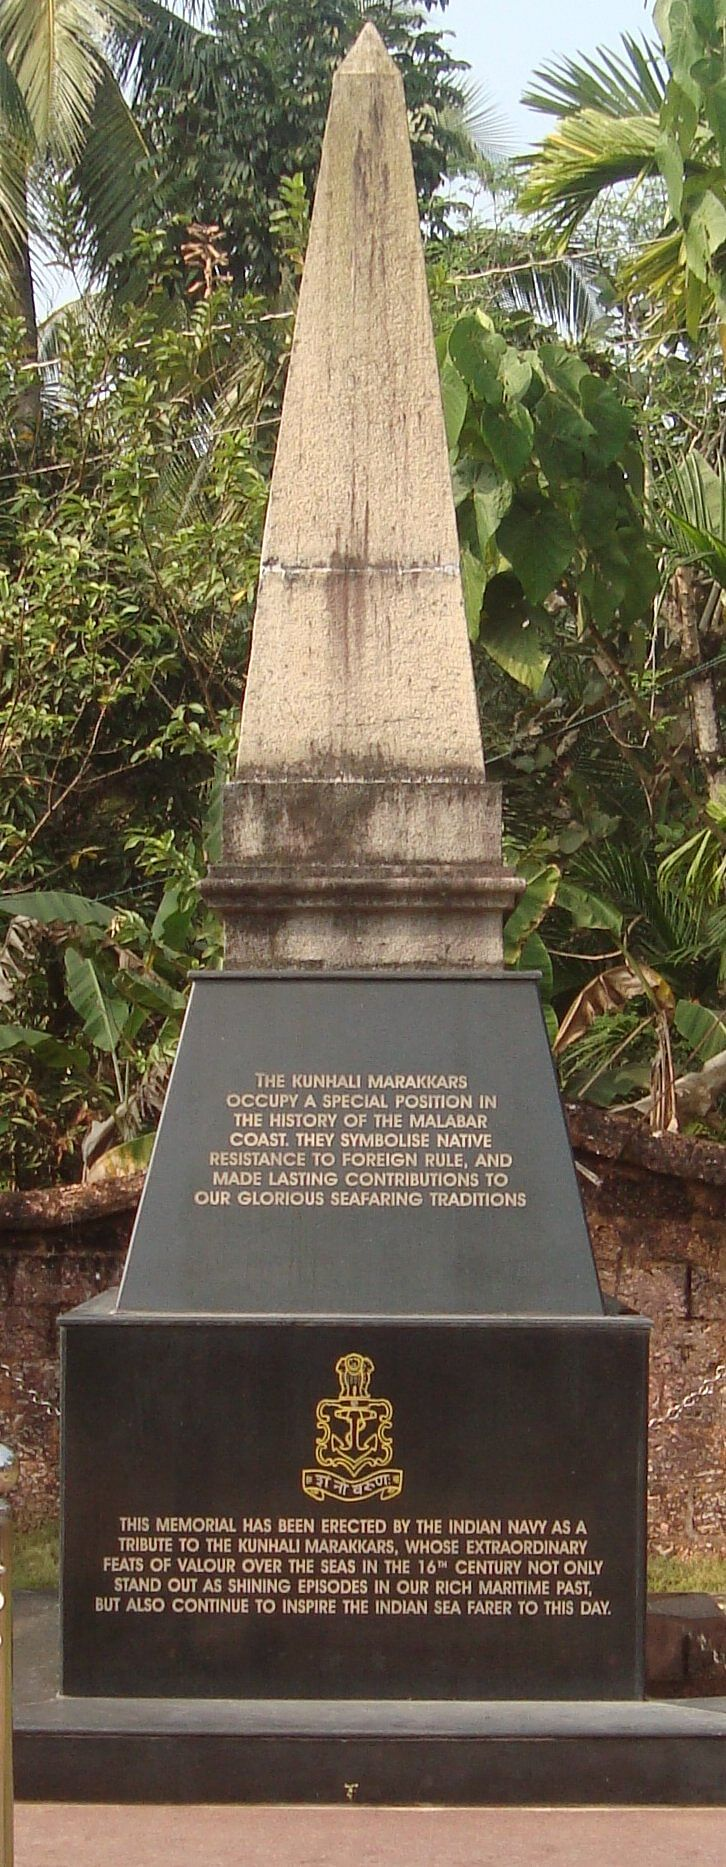 The Kunjali Marakkar Memorial erected by the Indian navy at Kottakkal, Vadakara Source: Wikipedia